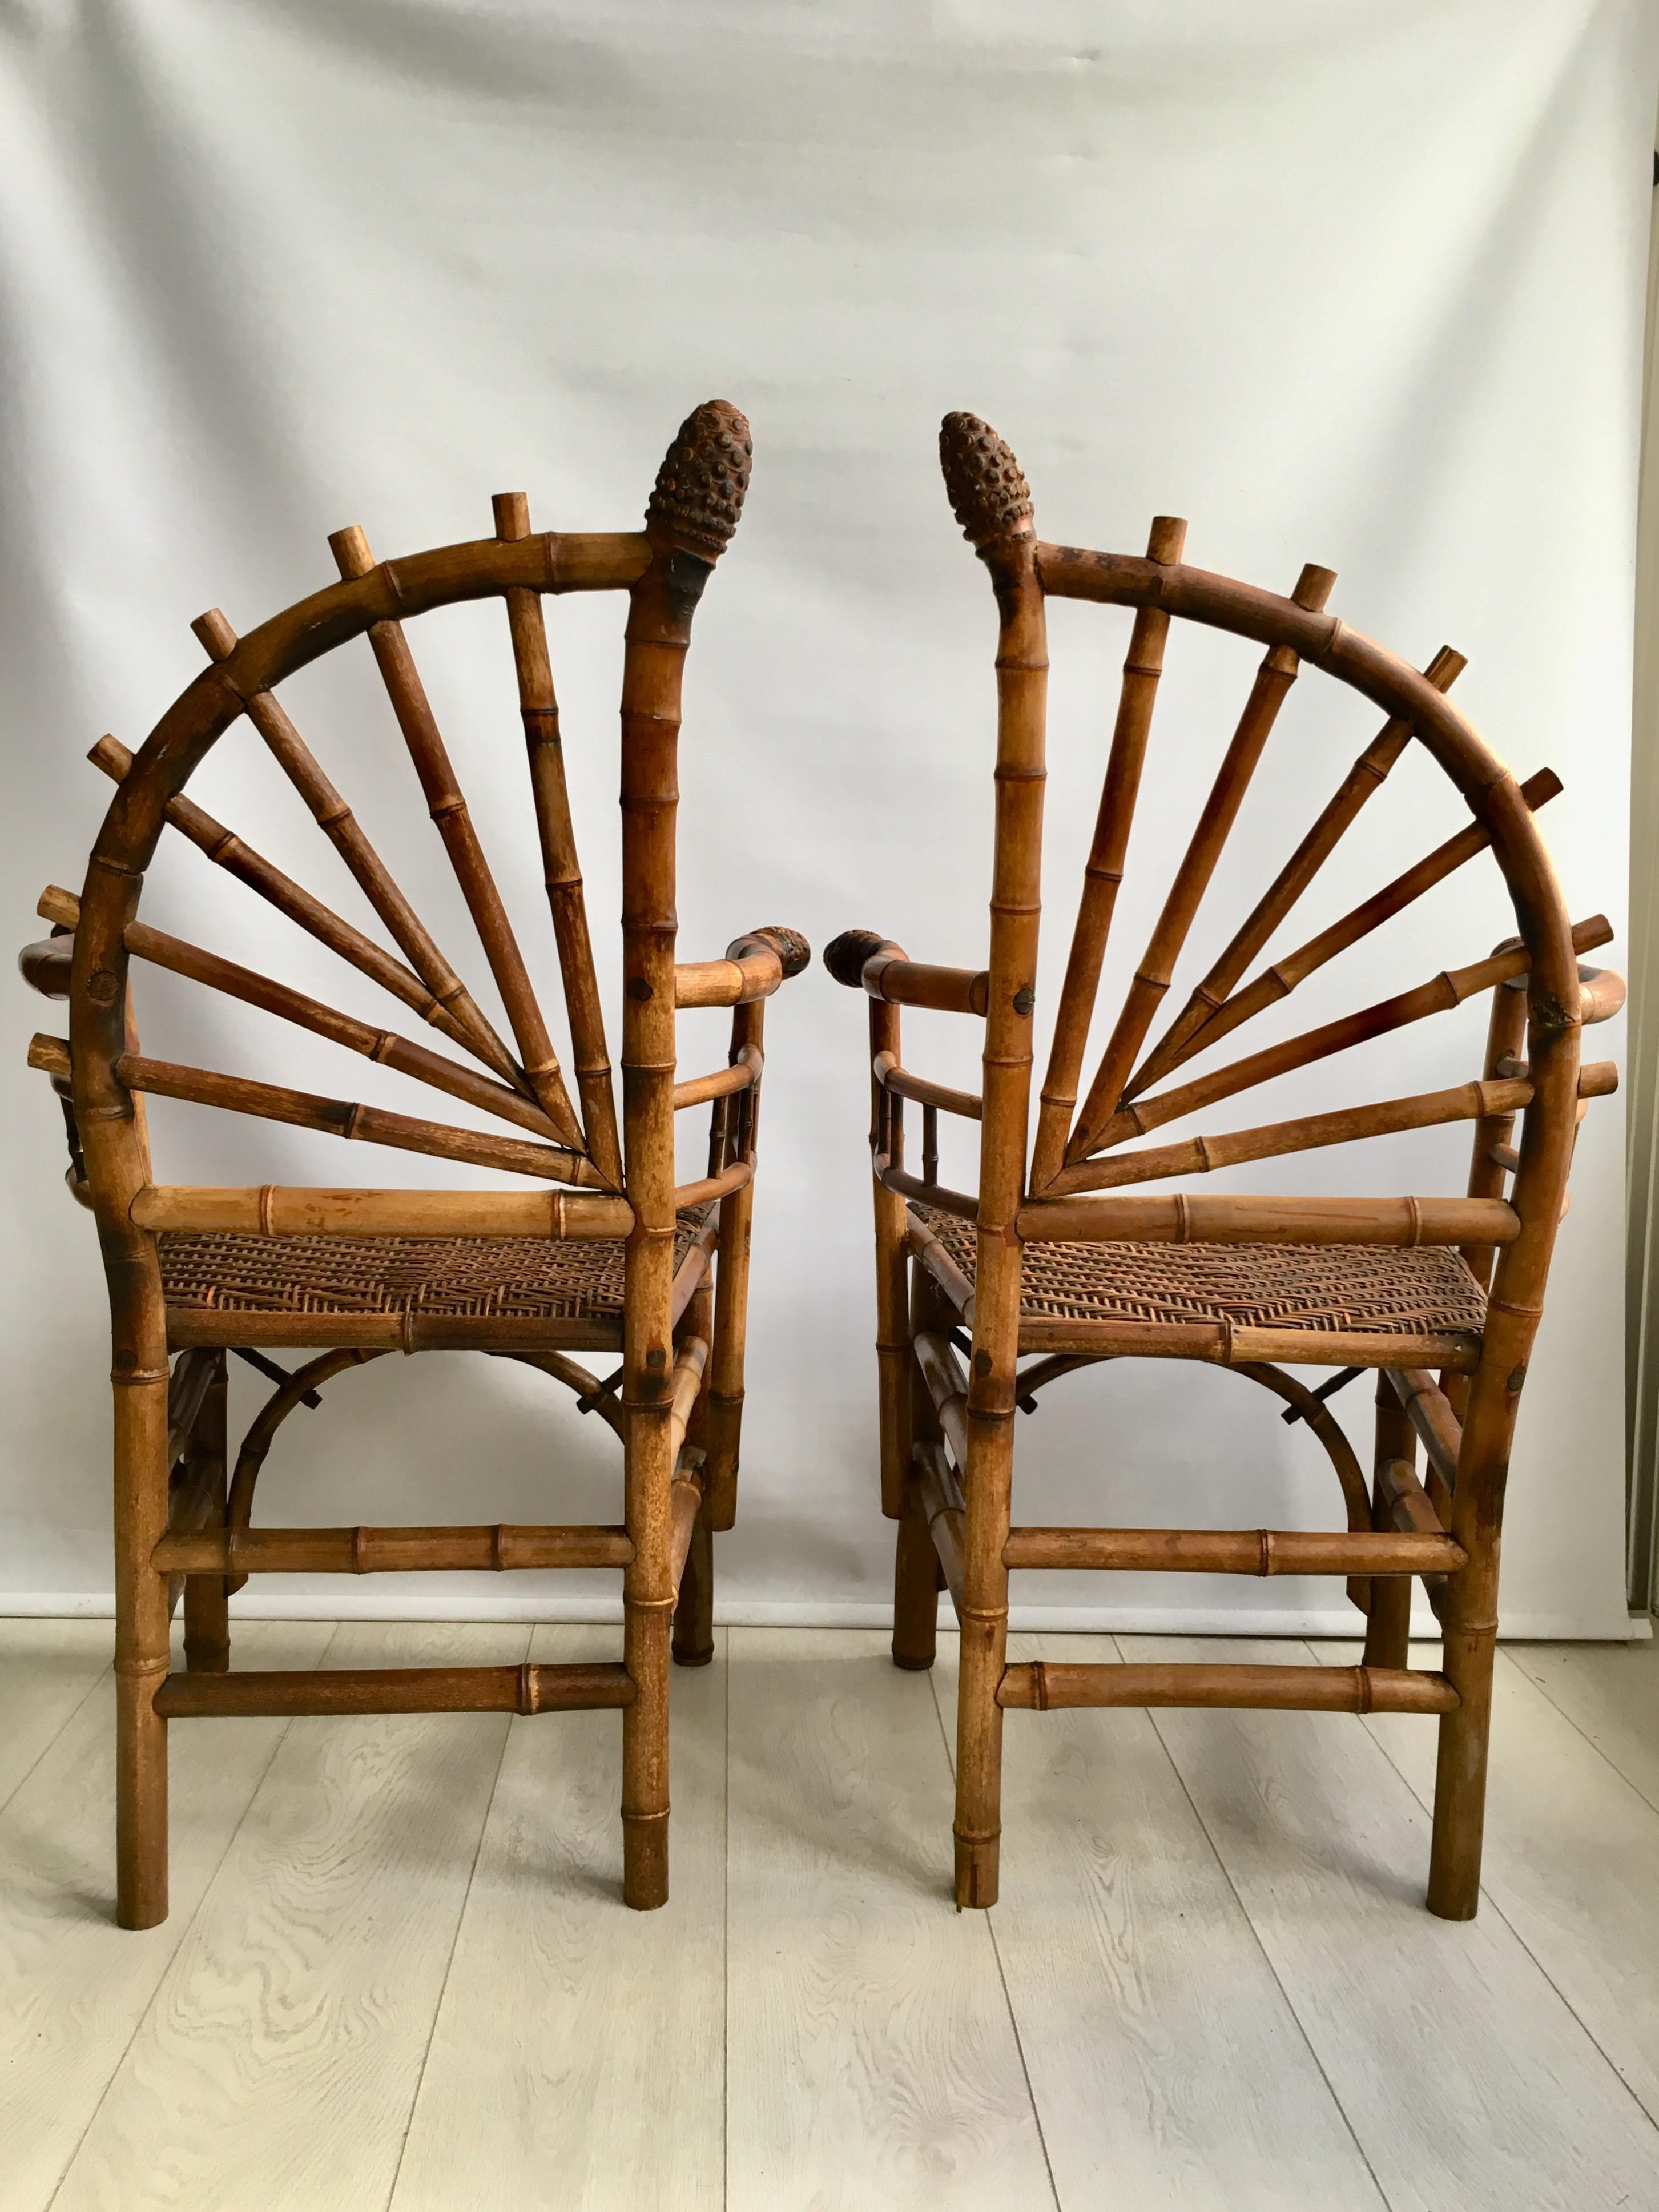 bamboo chairs for sale wicker hoop chair decorative pair of antique at 1stdibs 4